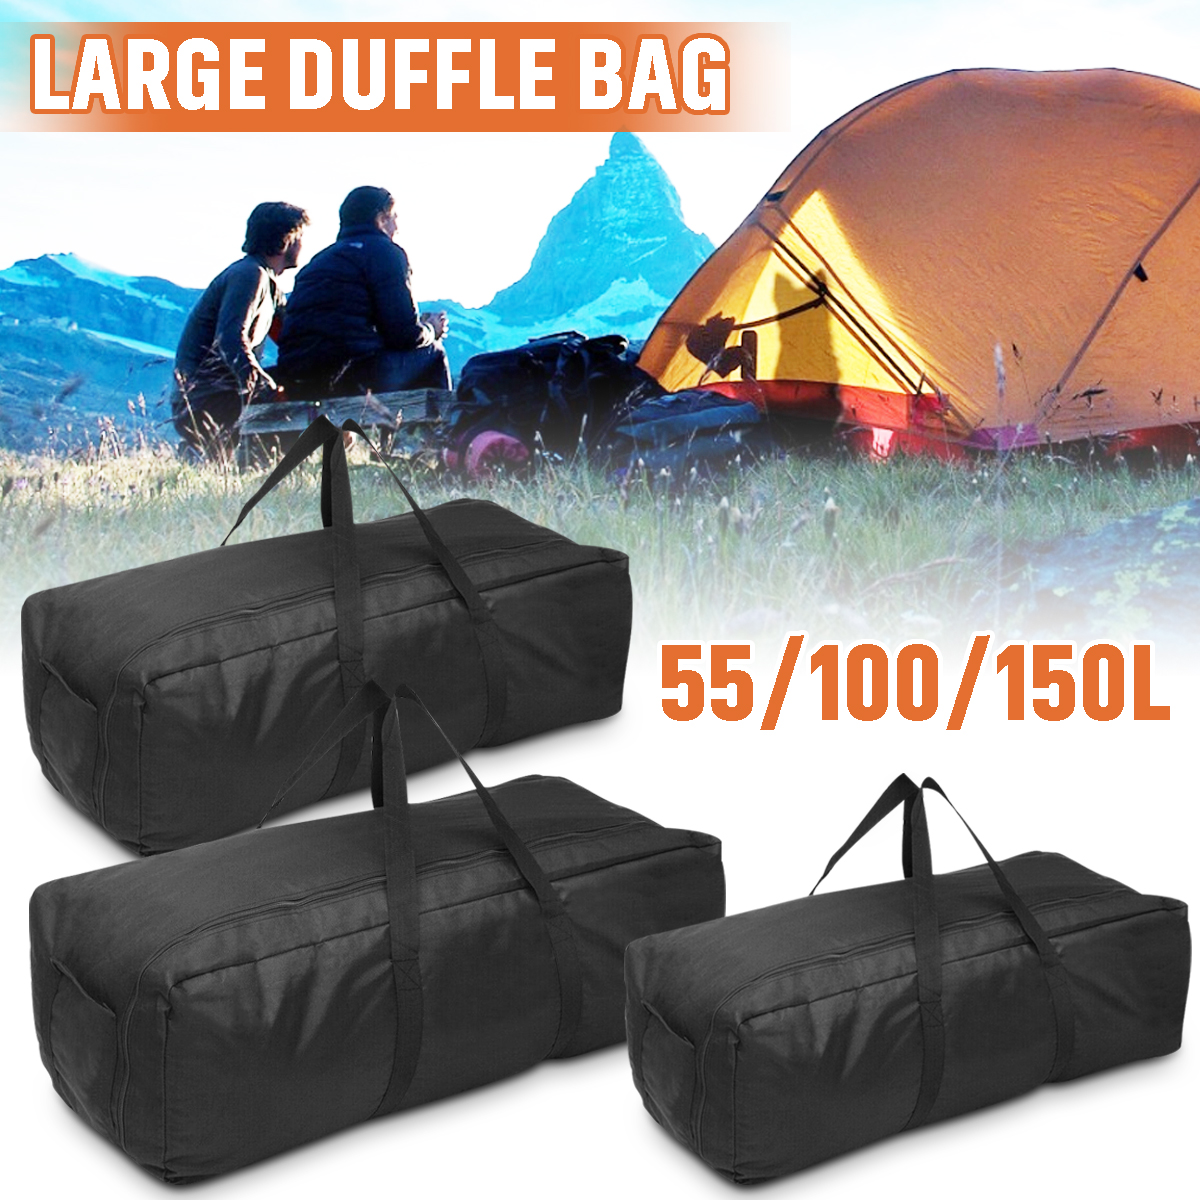 Details about  /Foldable Duffel Bag Luggage Storage Travel Pouch Shoulder Bag Oxford Waterproof